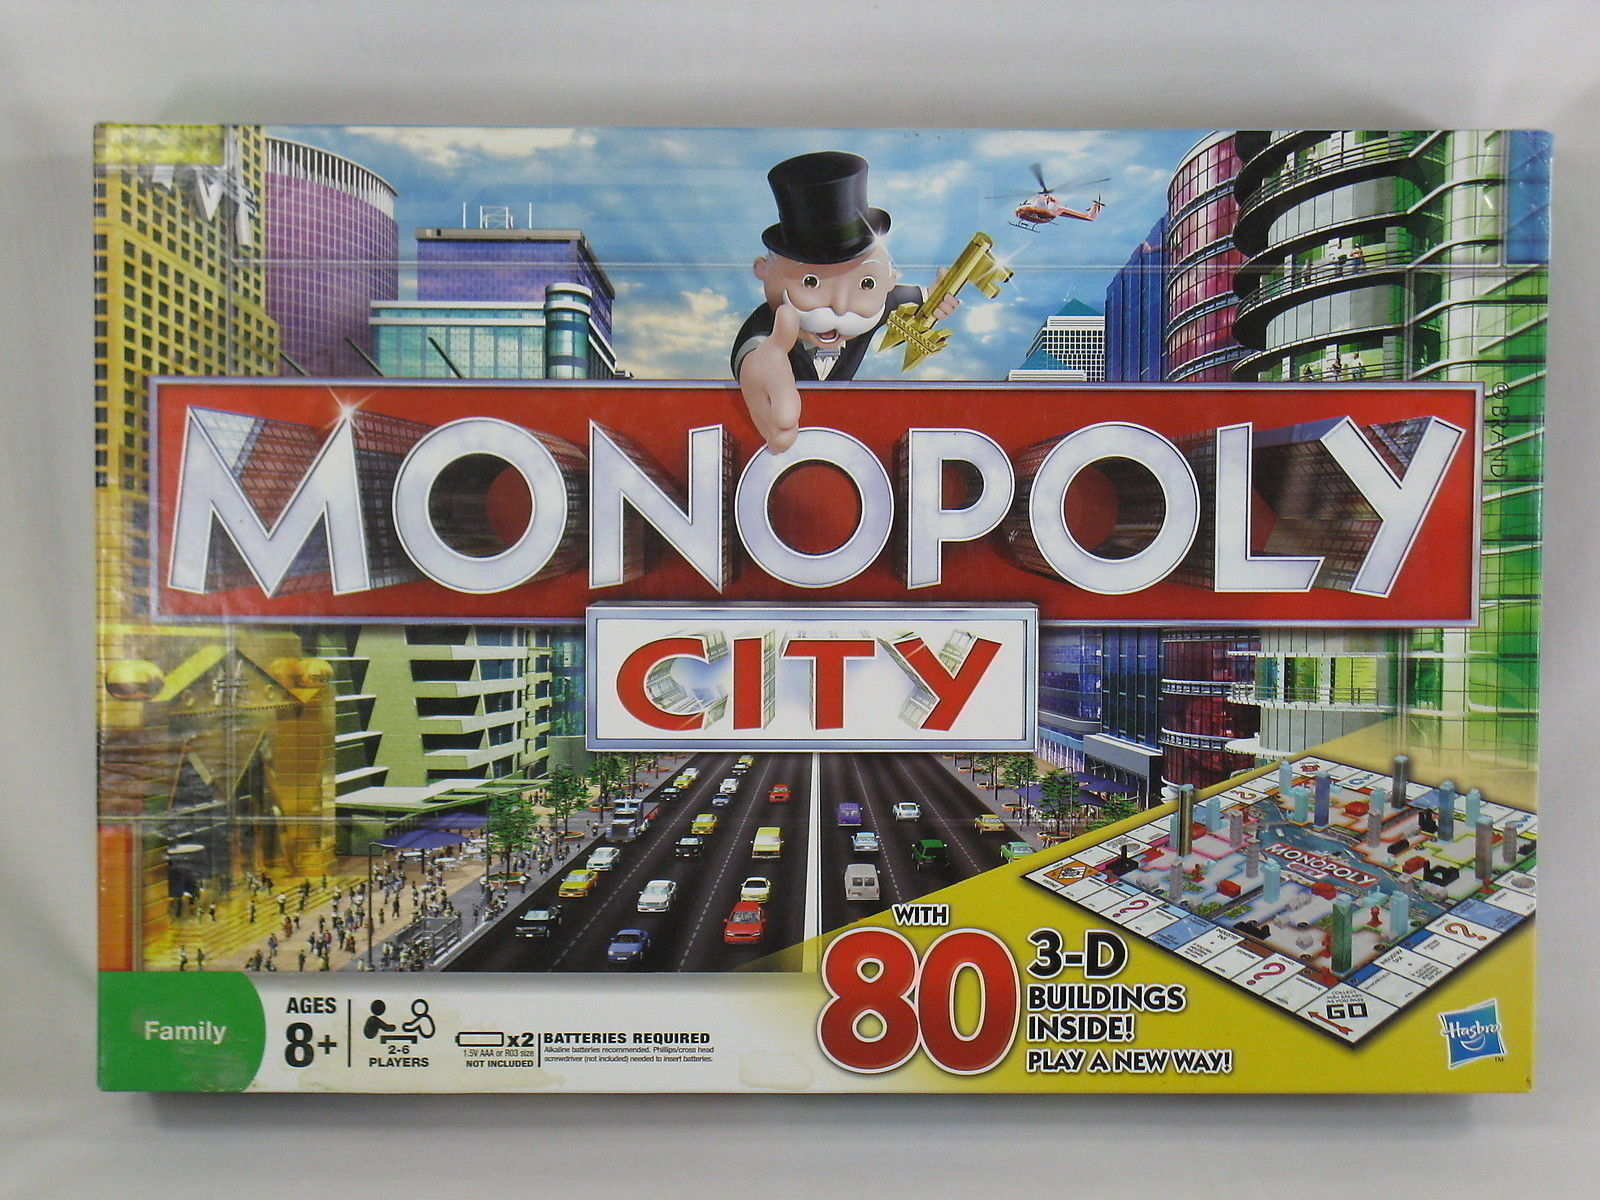 Primary image for MONOPOLY CITY with 80 3-D BUILDINGS HASBRO CANADA 2009 NEAR MINT CONDITION %%